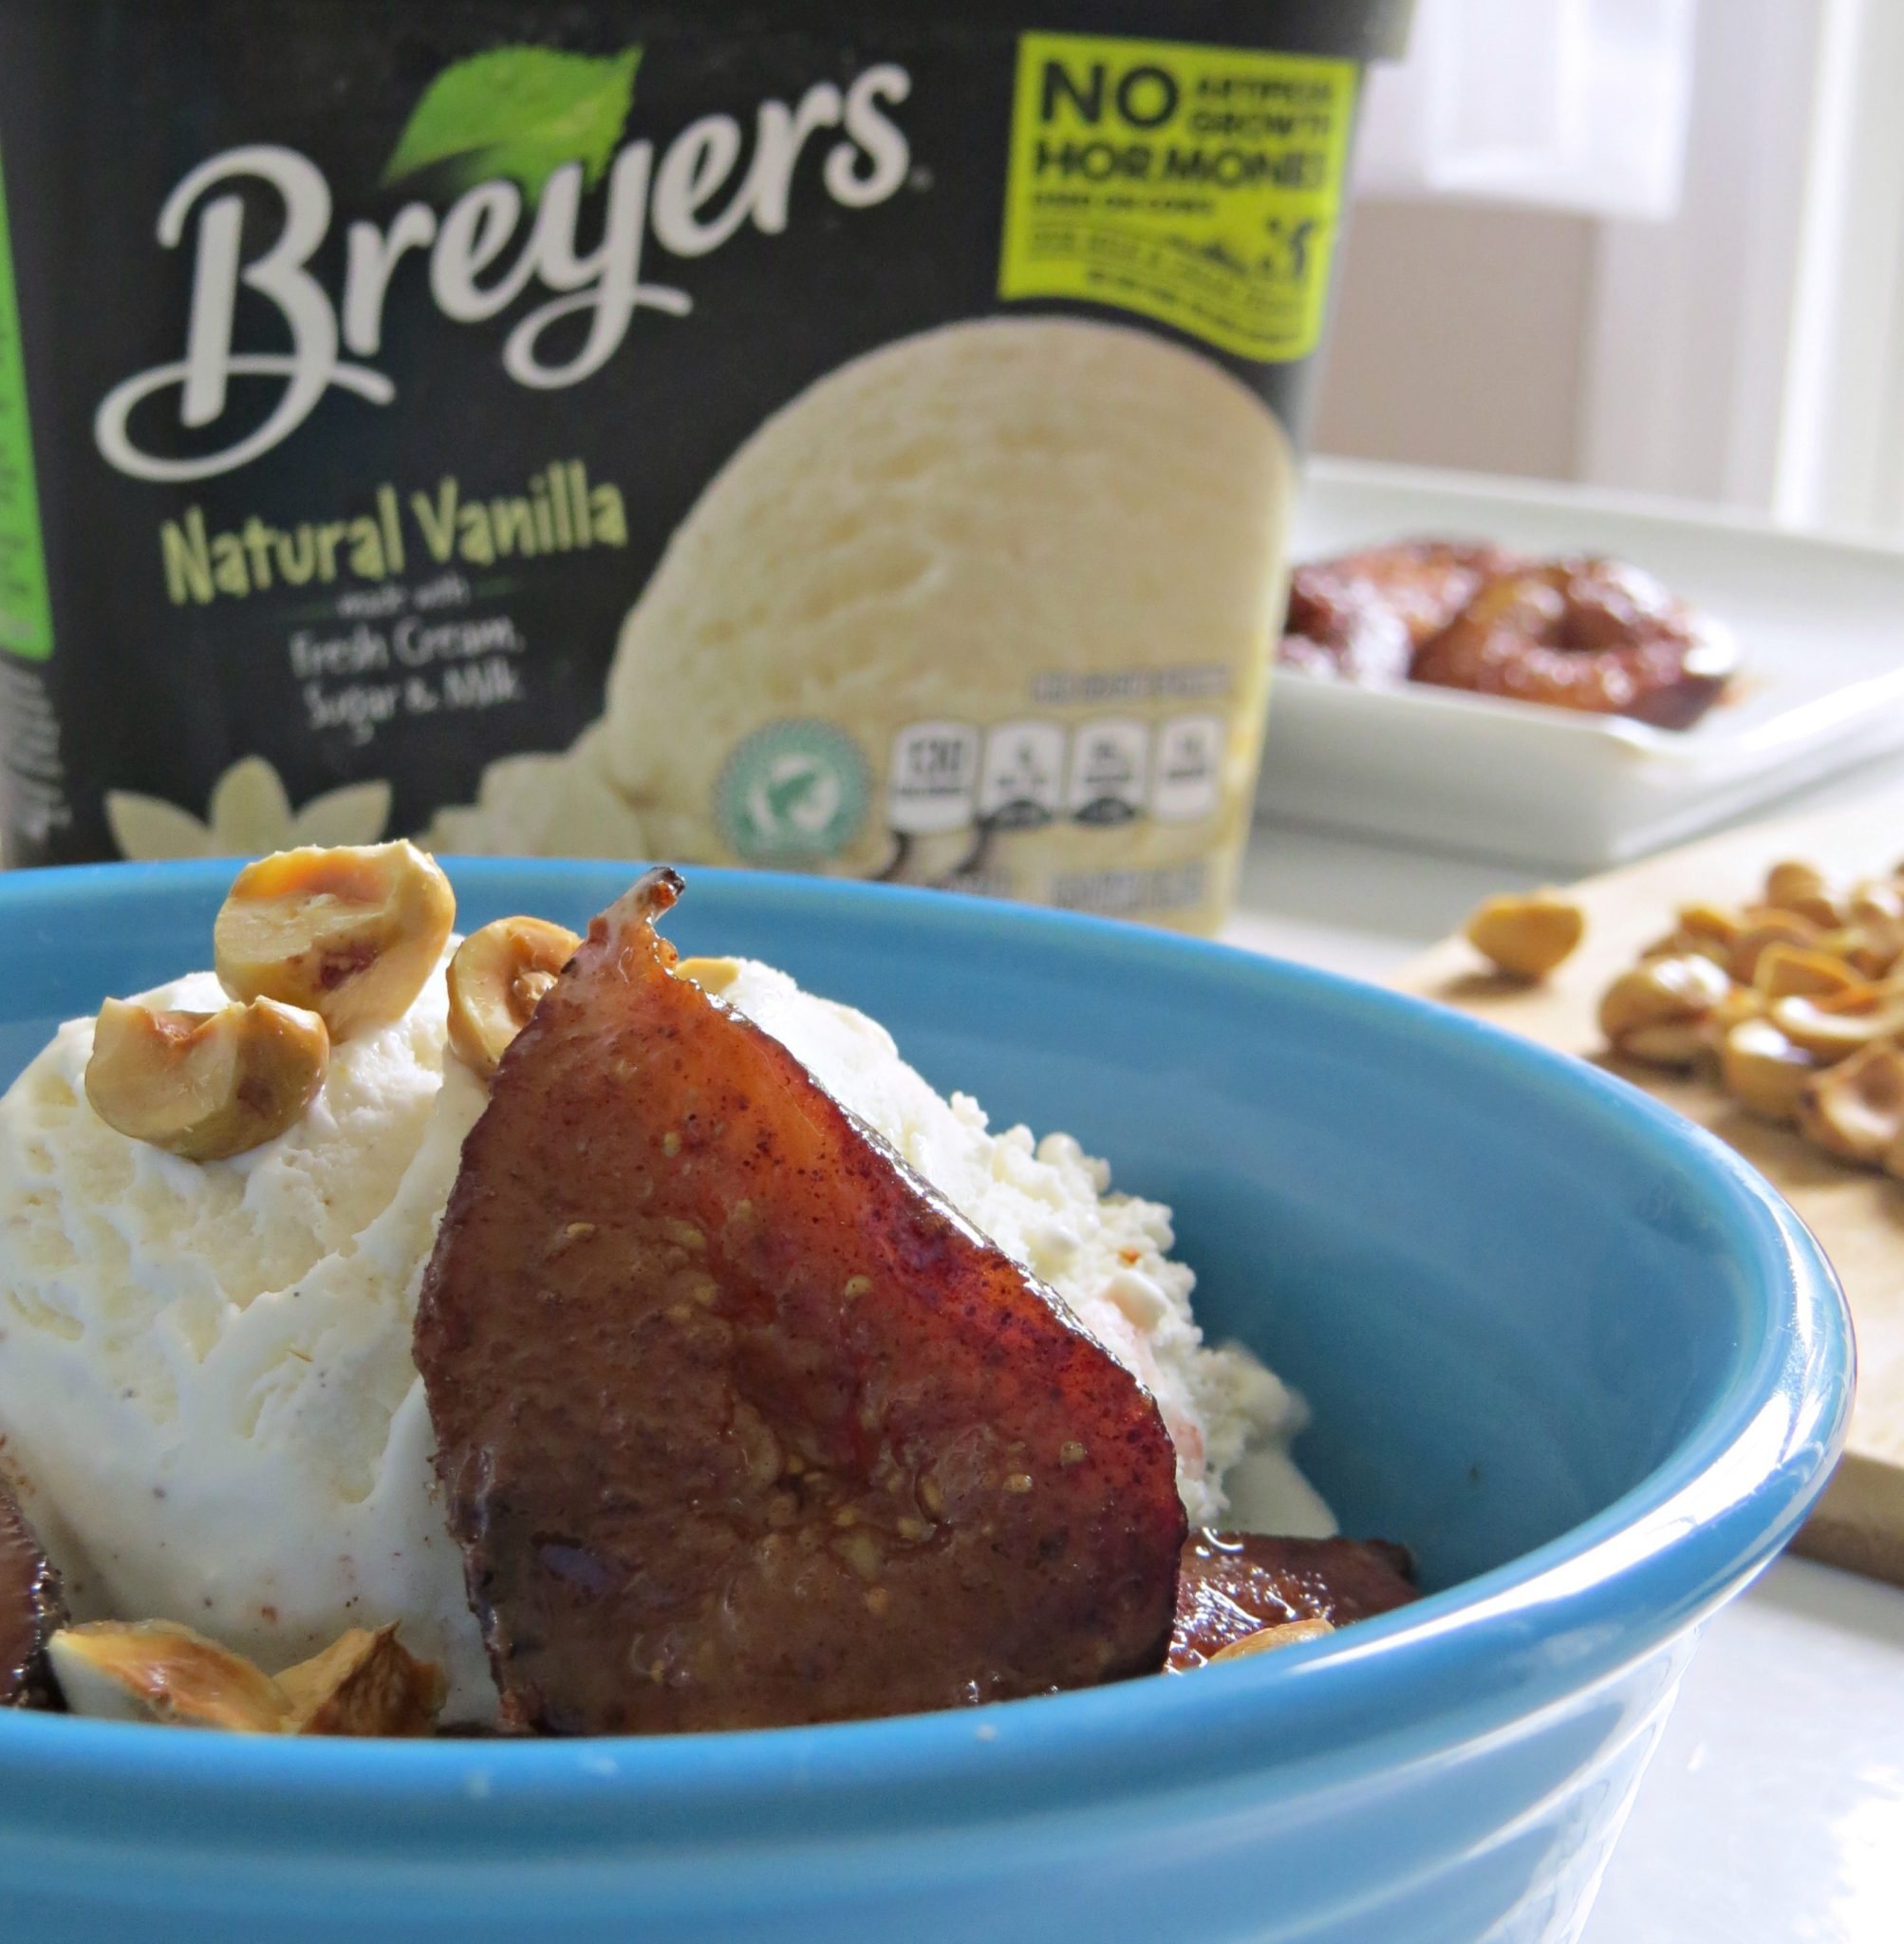 Spiced Figs and Vanilla Ice Cream - Written Reality